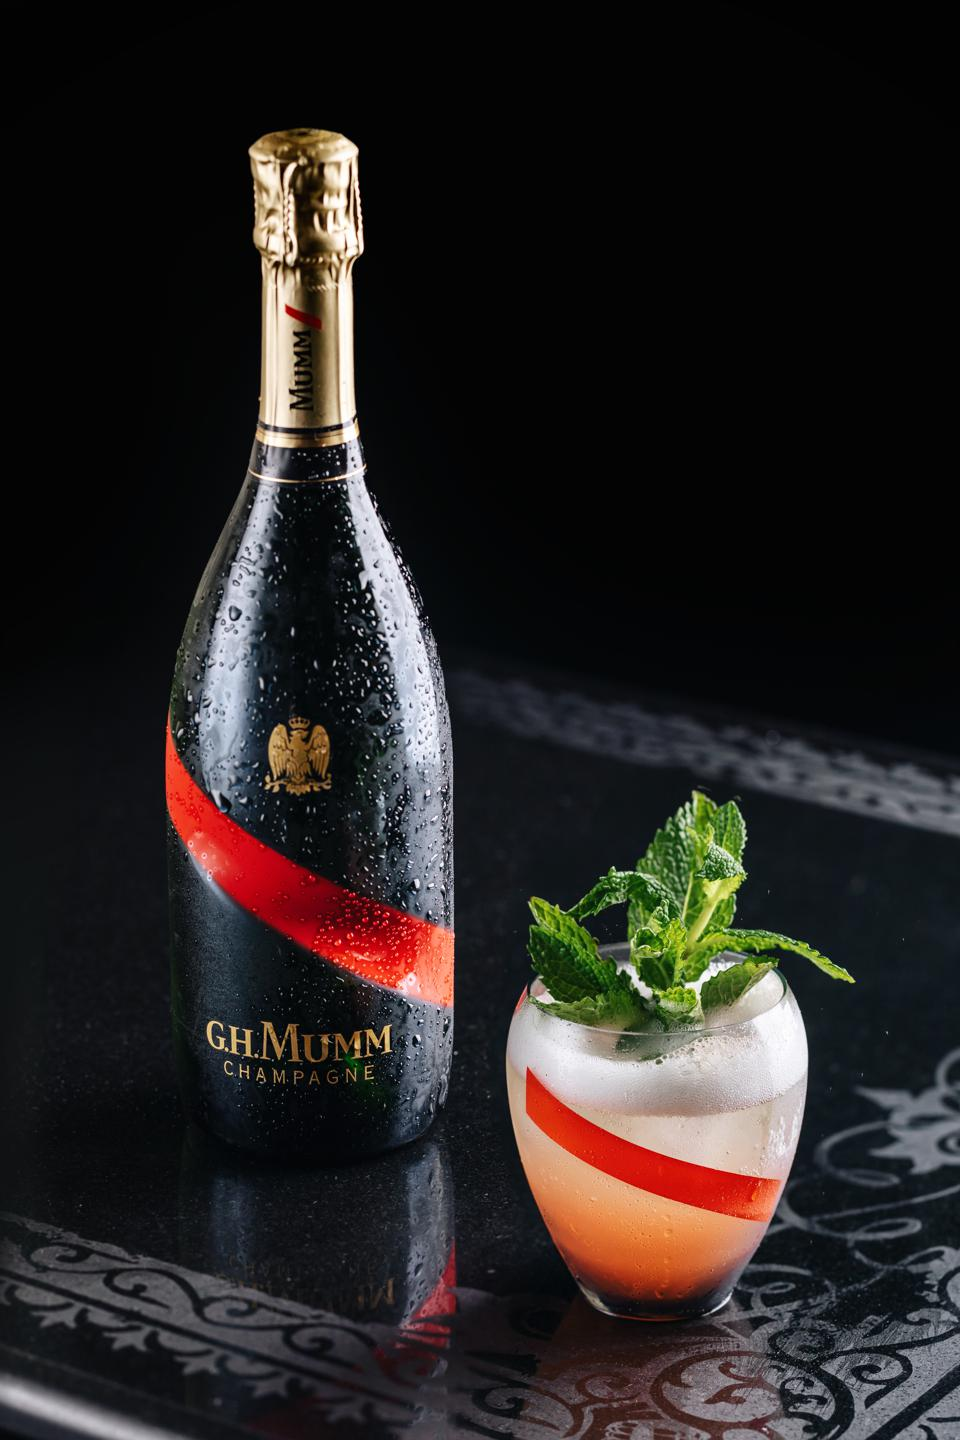 GH Mumm Champagne and a sparkling mint julep.